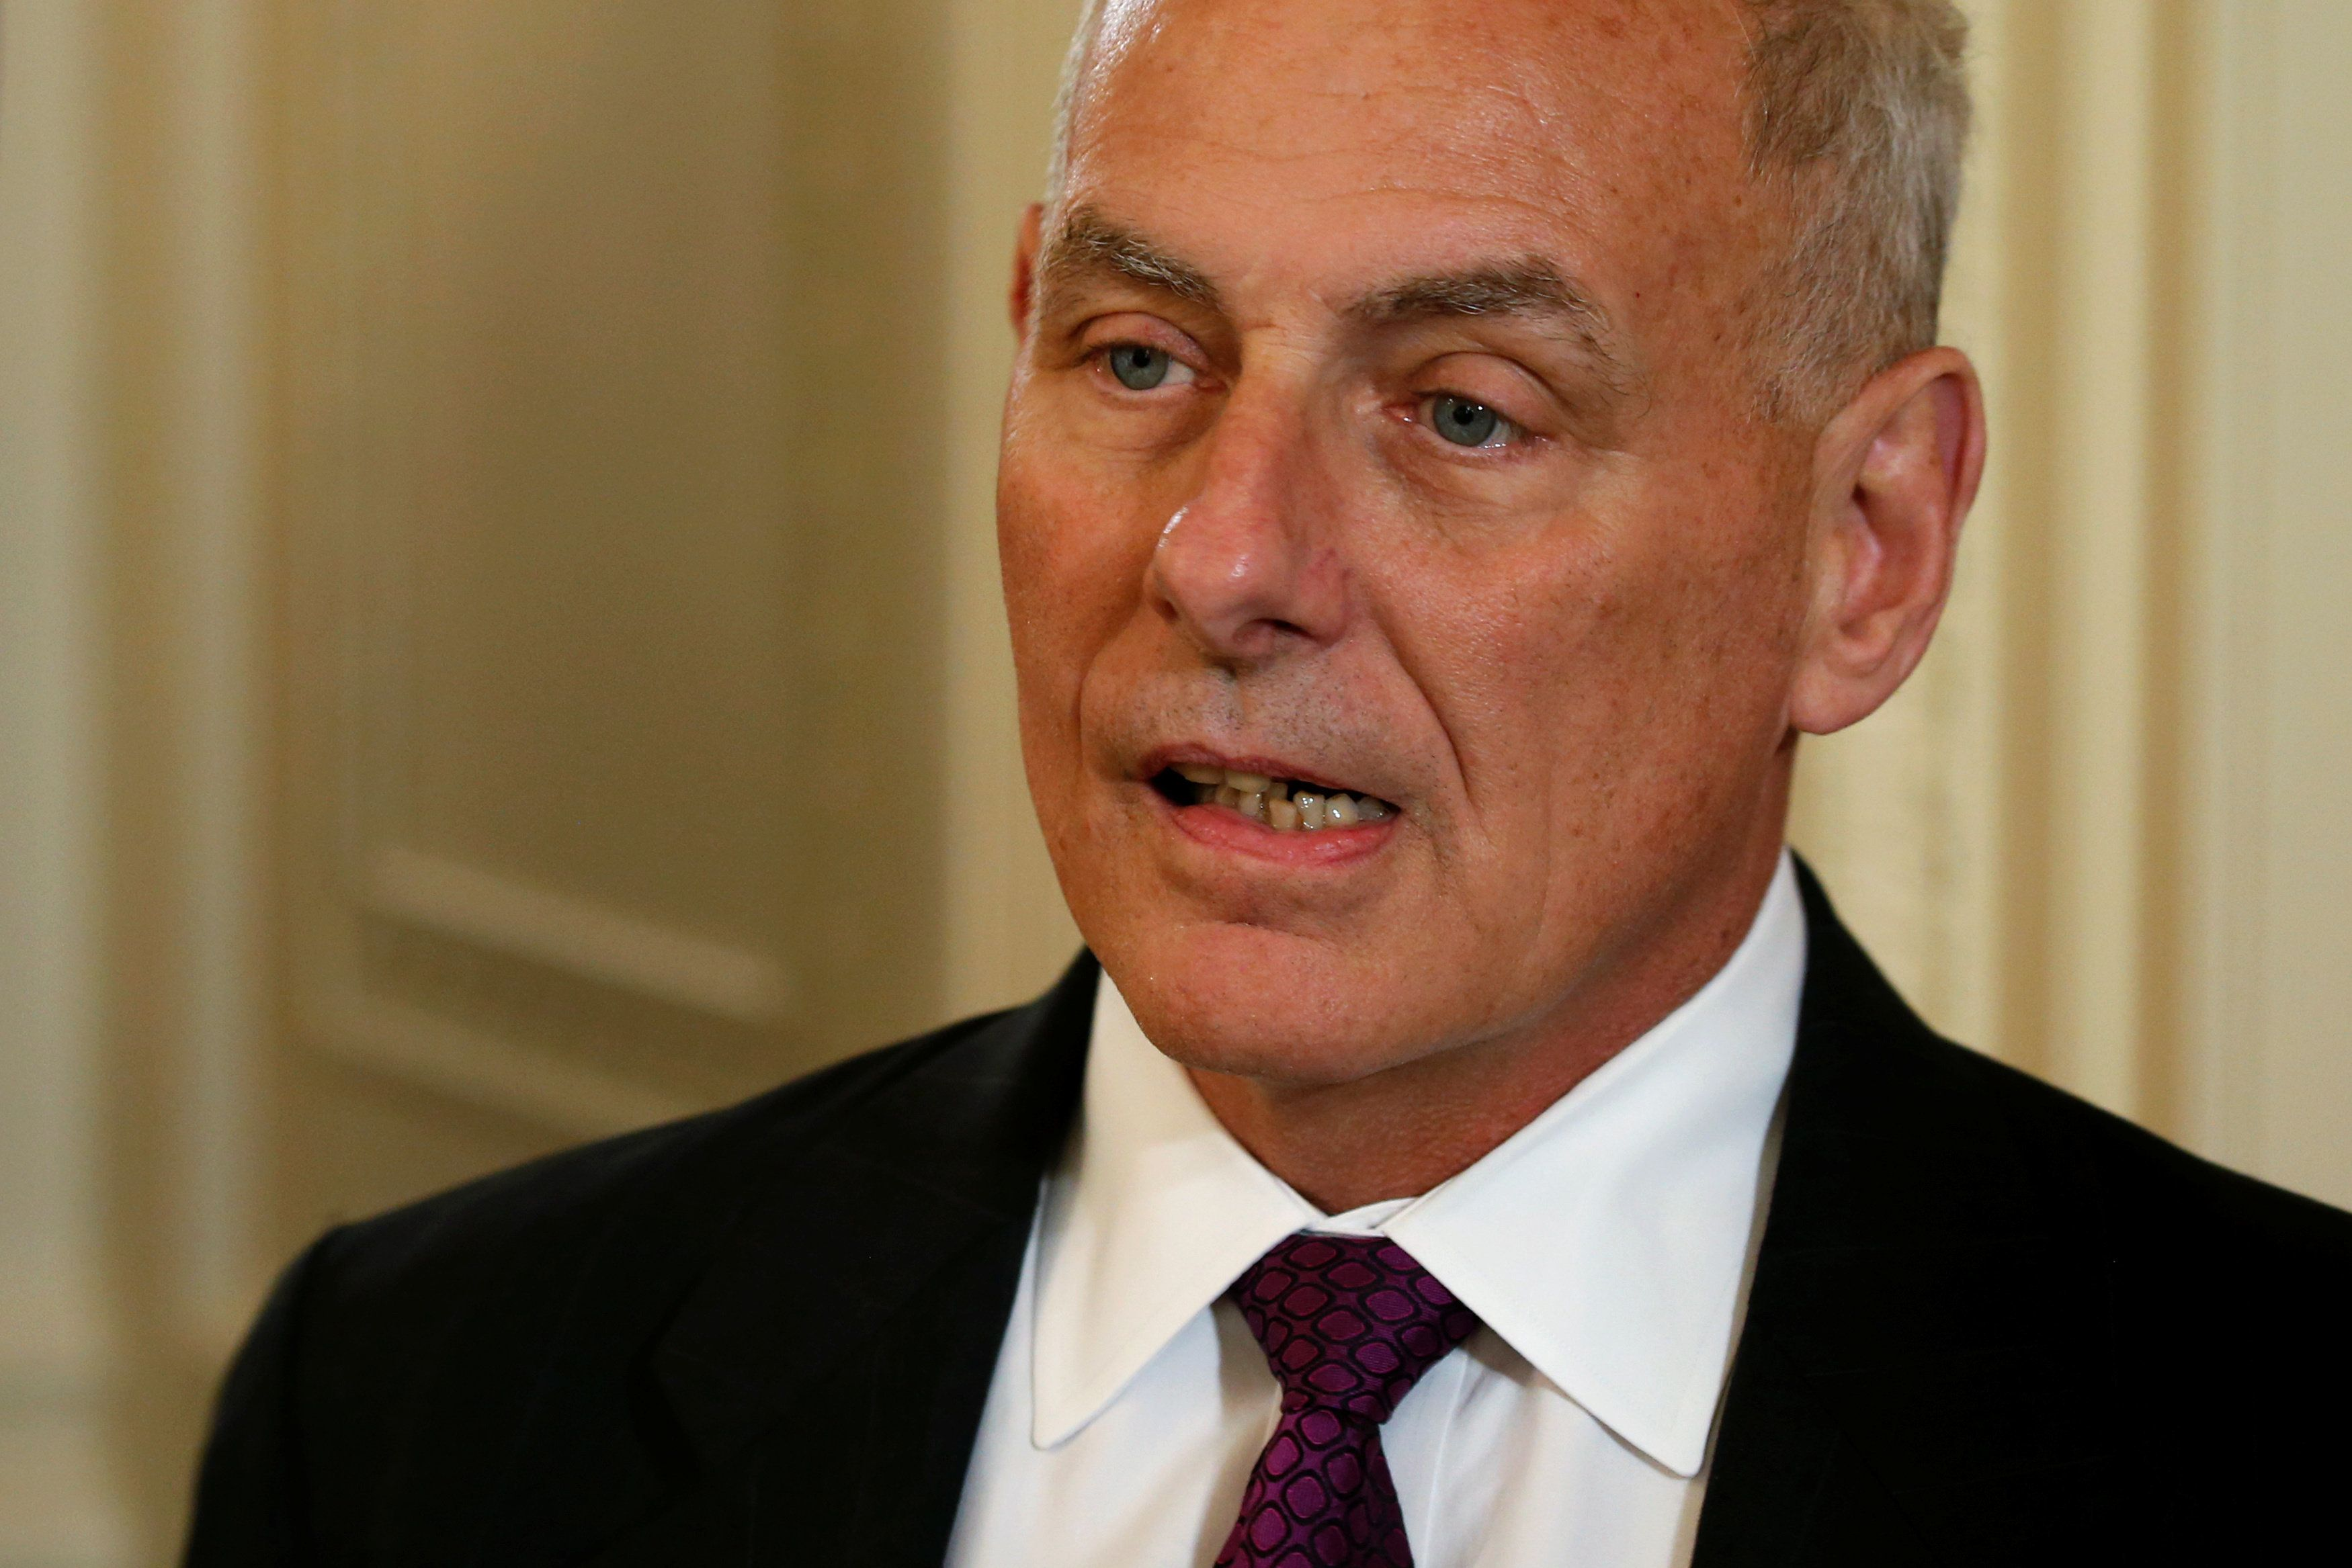 White House Chief of Staff John Kelly arrives for a small business event to be addressed by U.S. President Donald Trump at the White House in Washington, U.S. August 1, 2017.  REUTERS/Jonathan Ernst